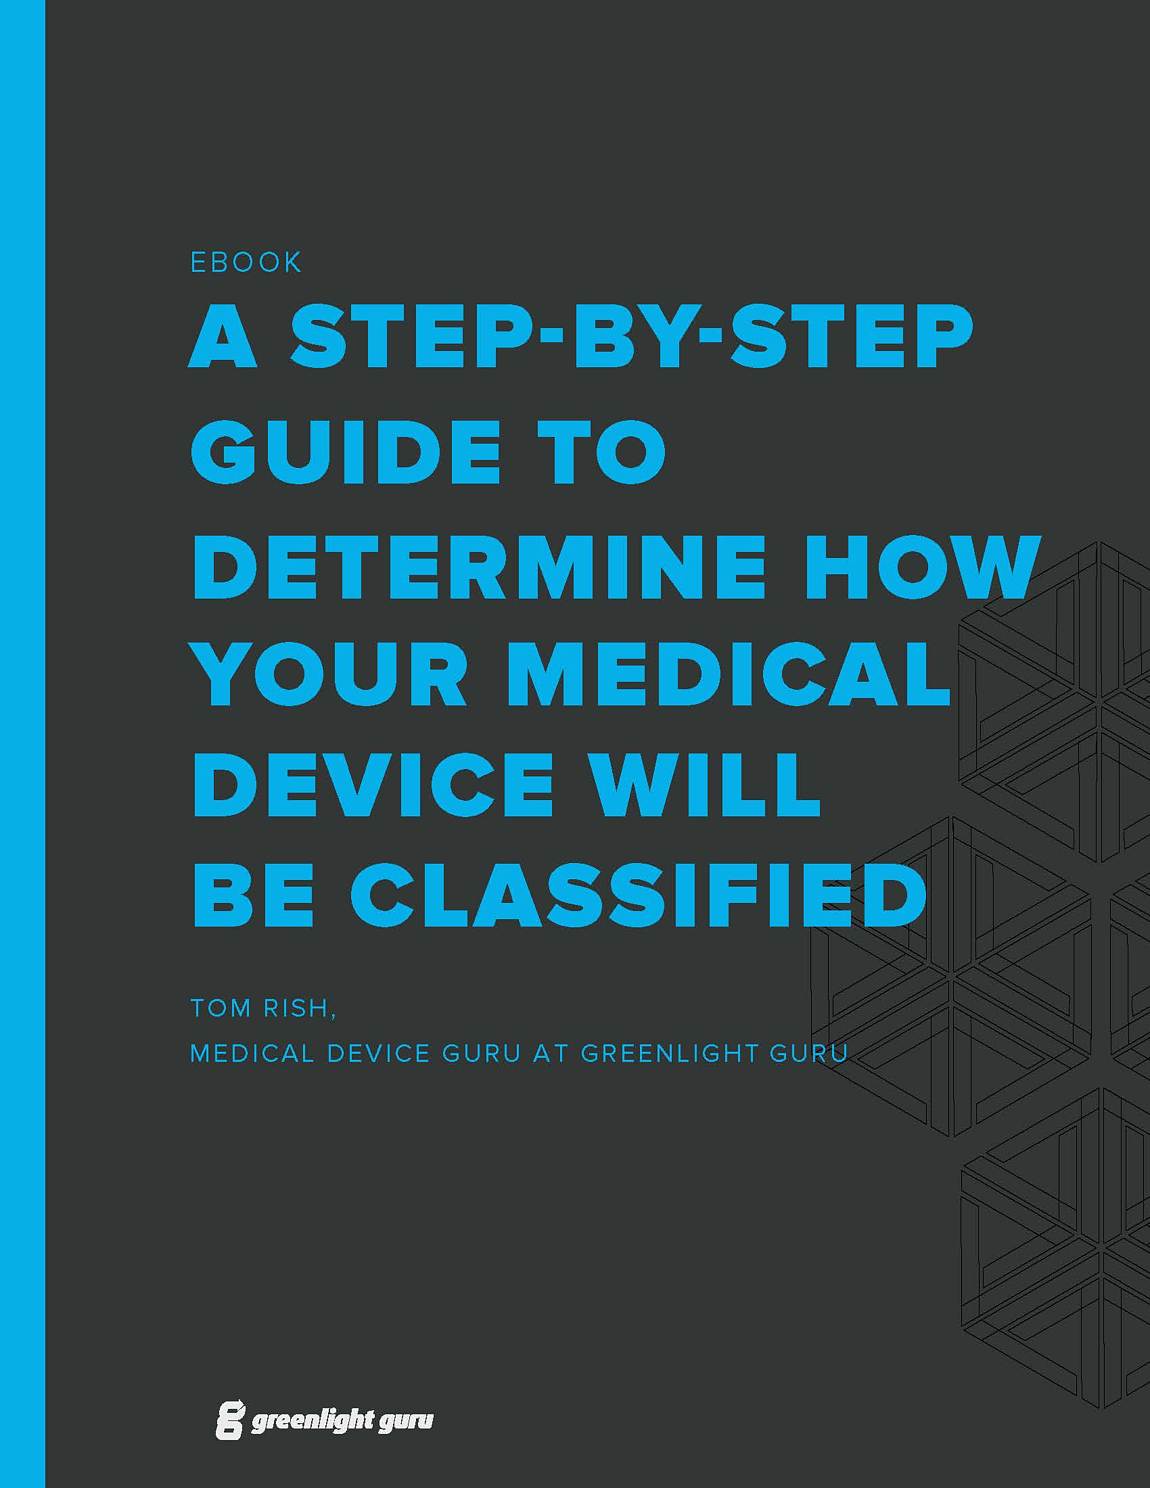 (cover) Device Classification